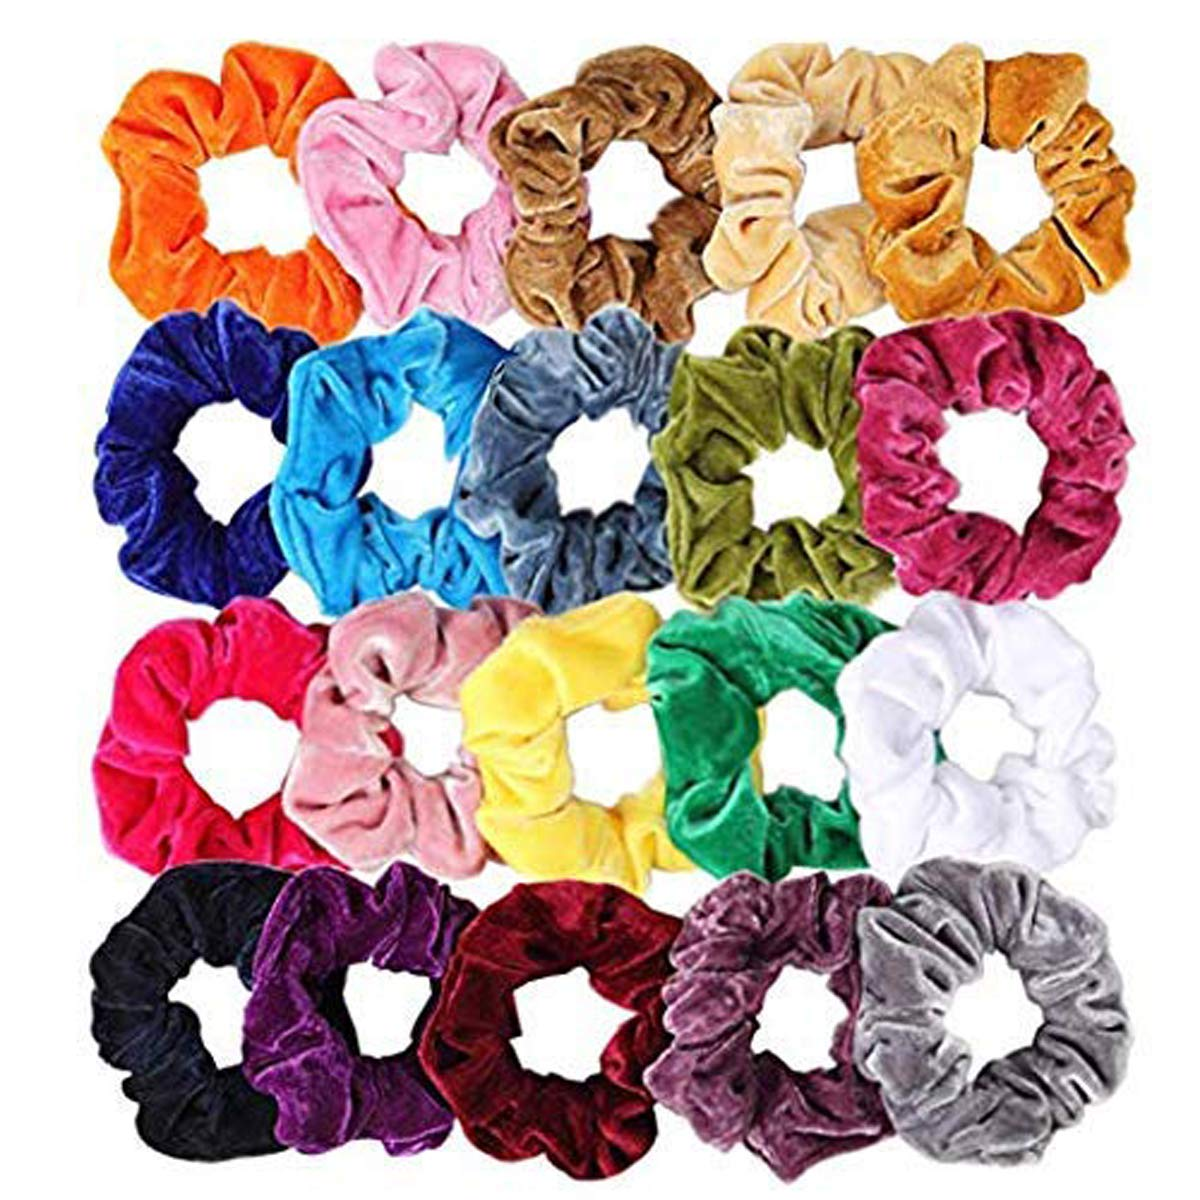 12 Pieces Multicolour Velvet hair band Scrunchies Bands Elastics Velvet Hair Bands for Women, velvet hair bands for girls latest